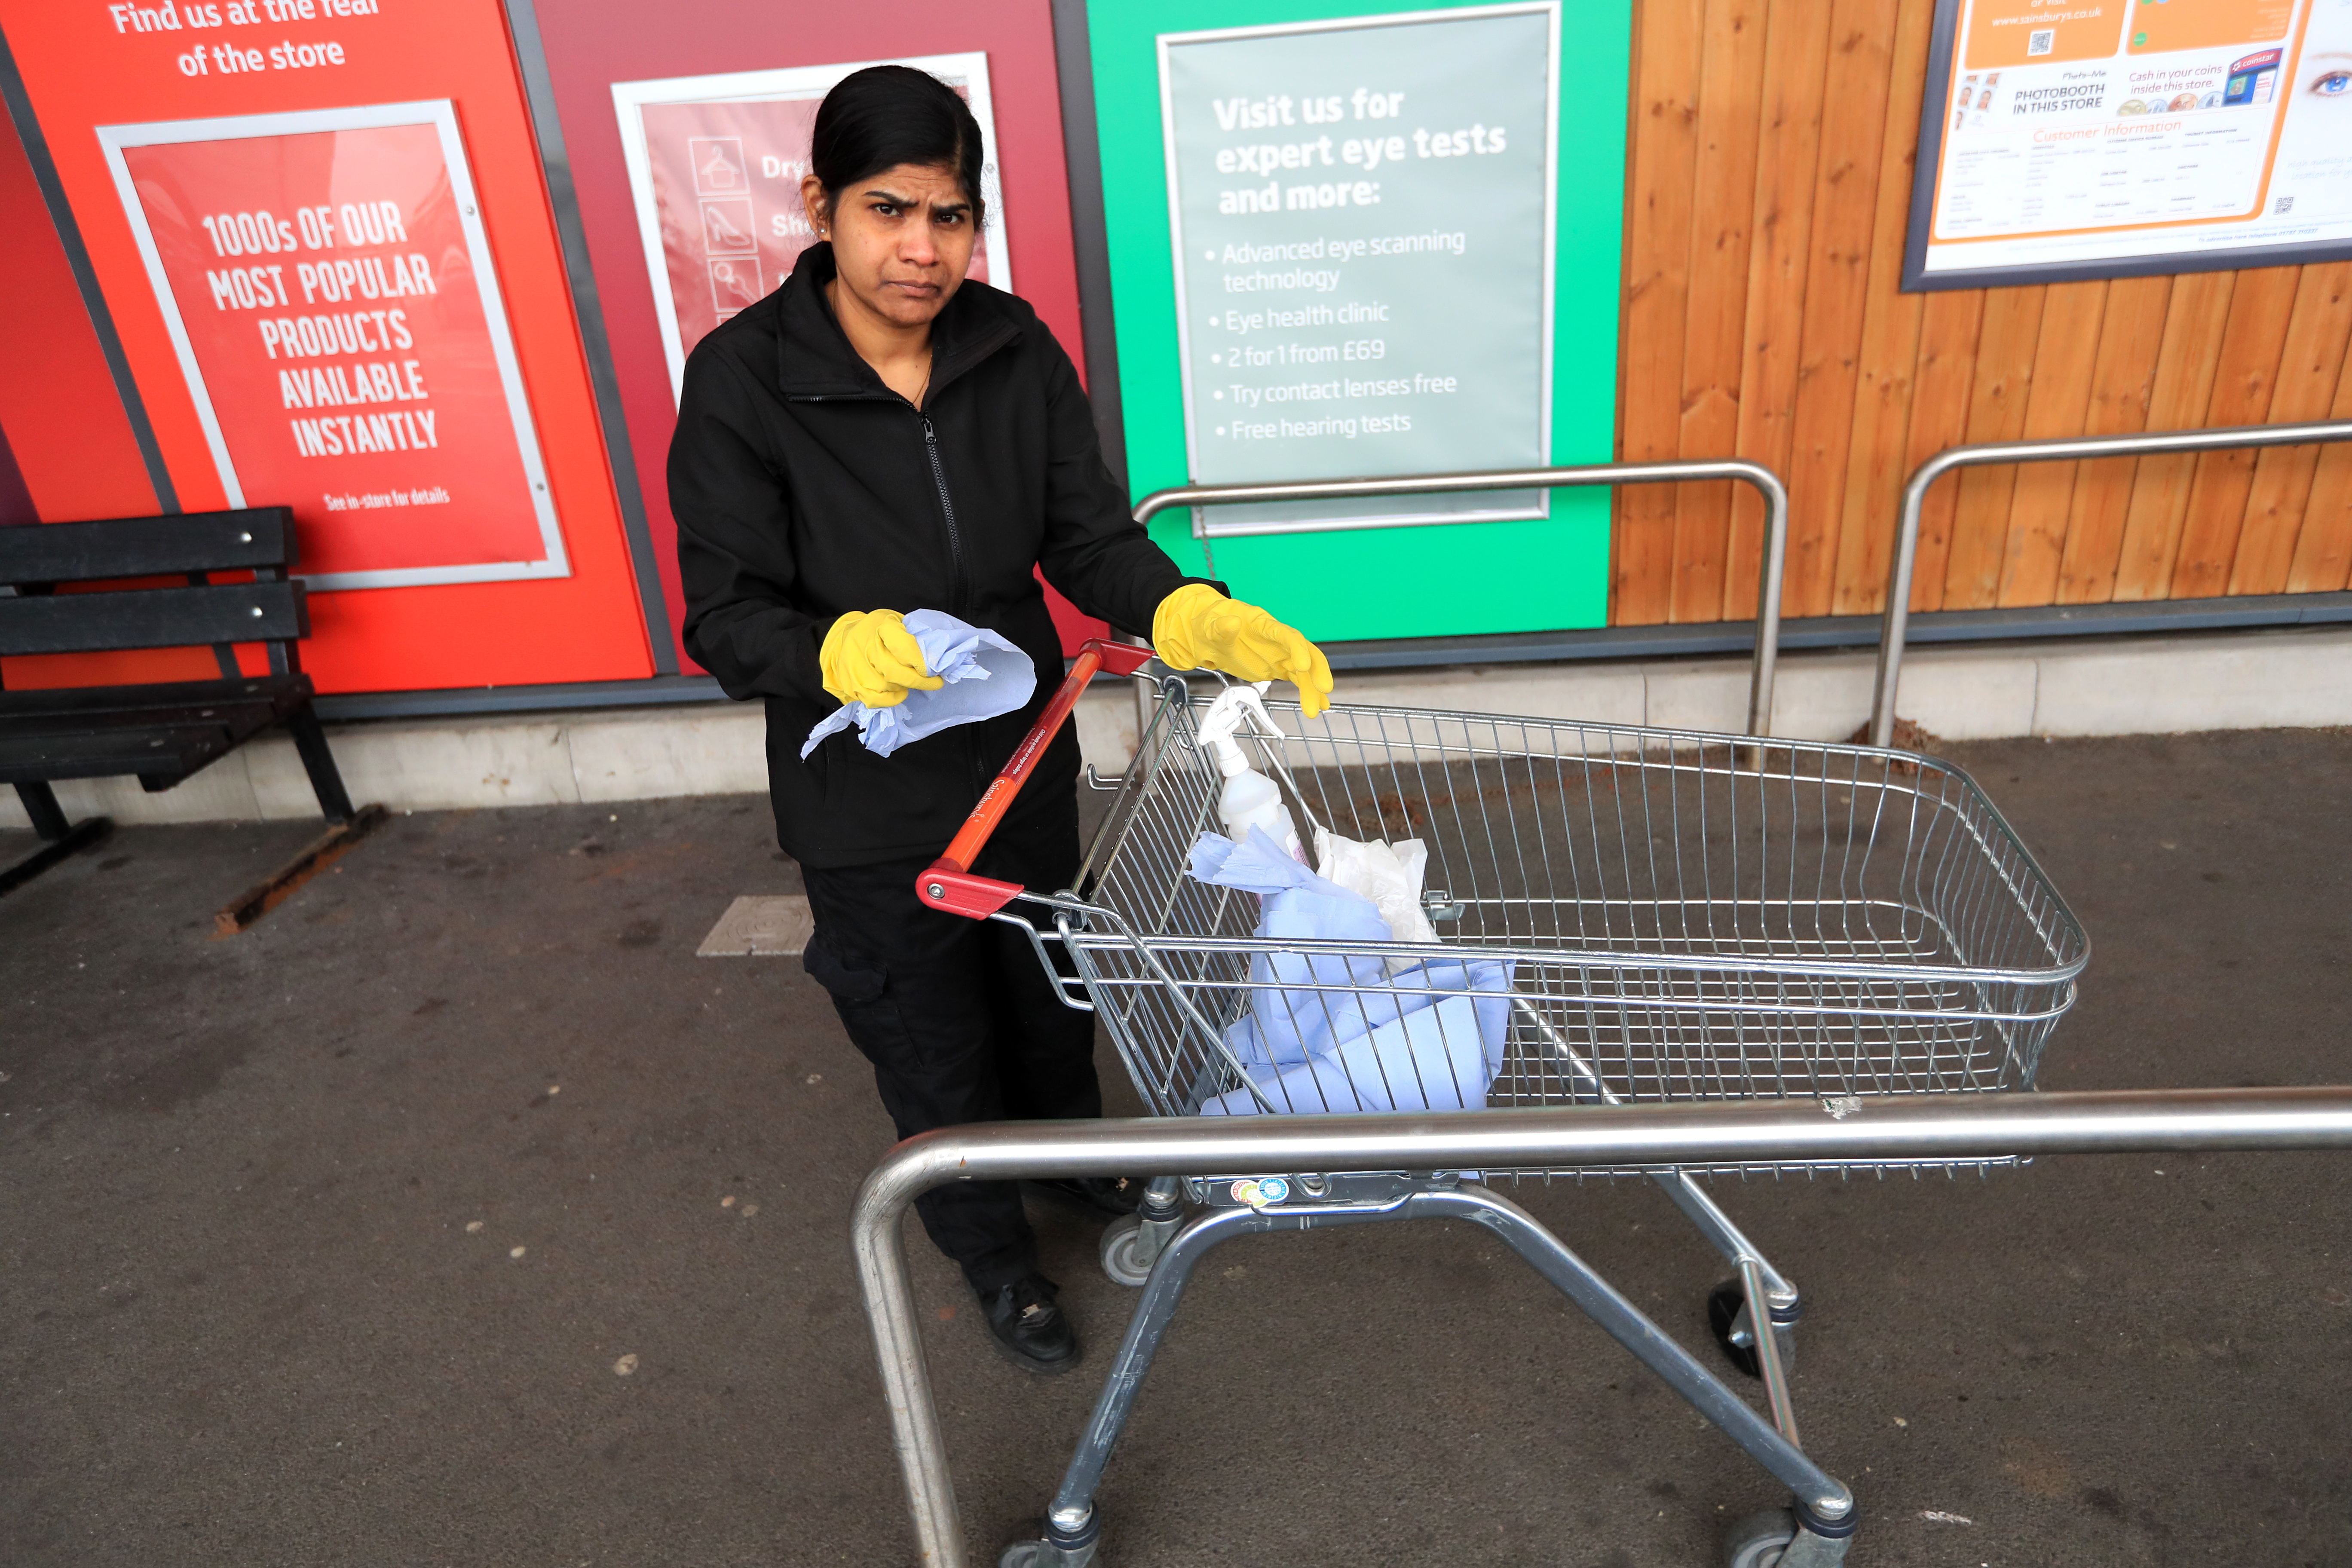 Trollies are being disinfected at a Sainsburys in Leicester after NHS England announced that the coronavirus death toll had reached 104 in the UK.